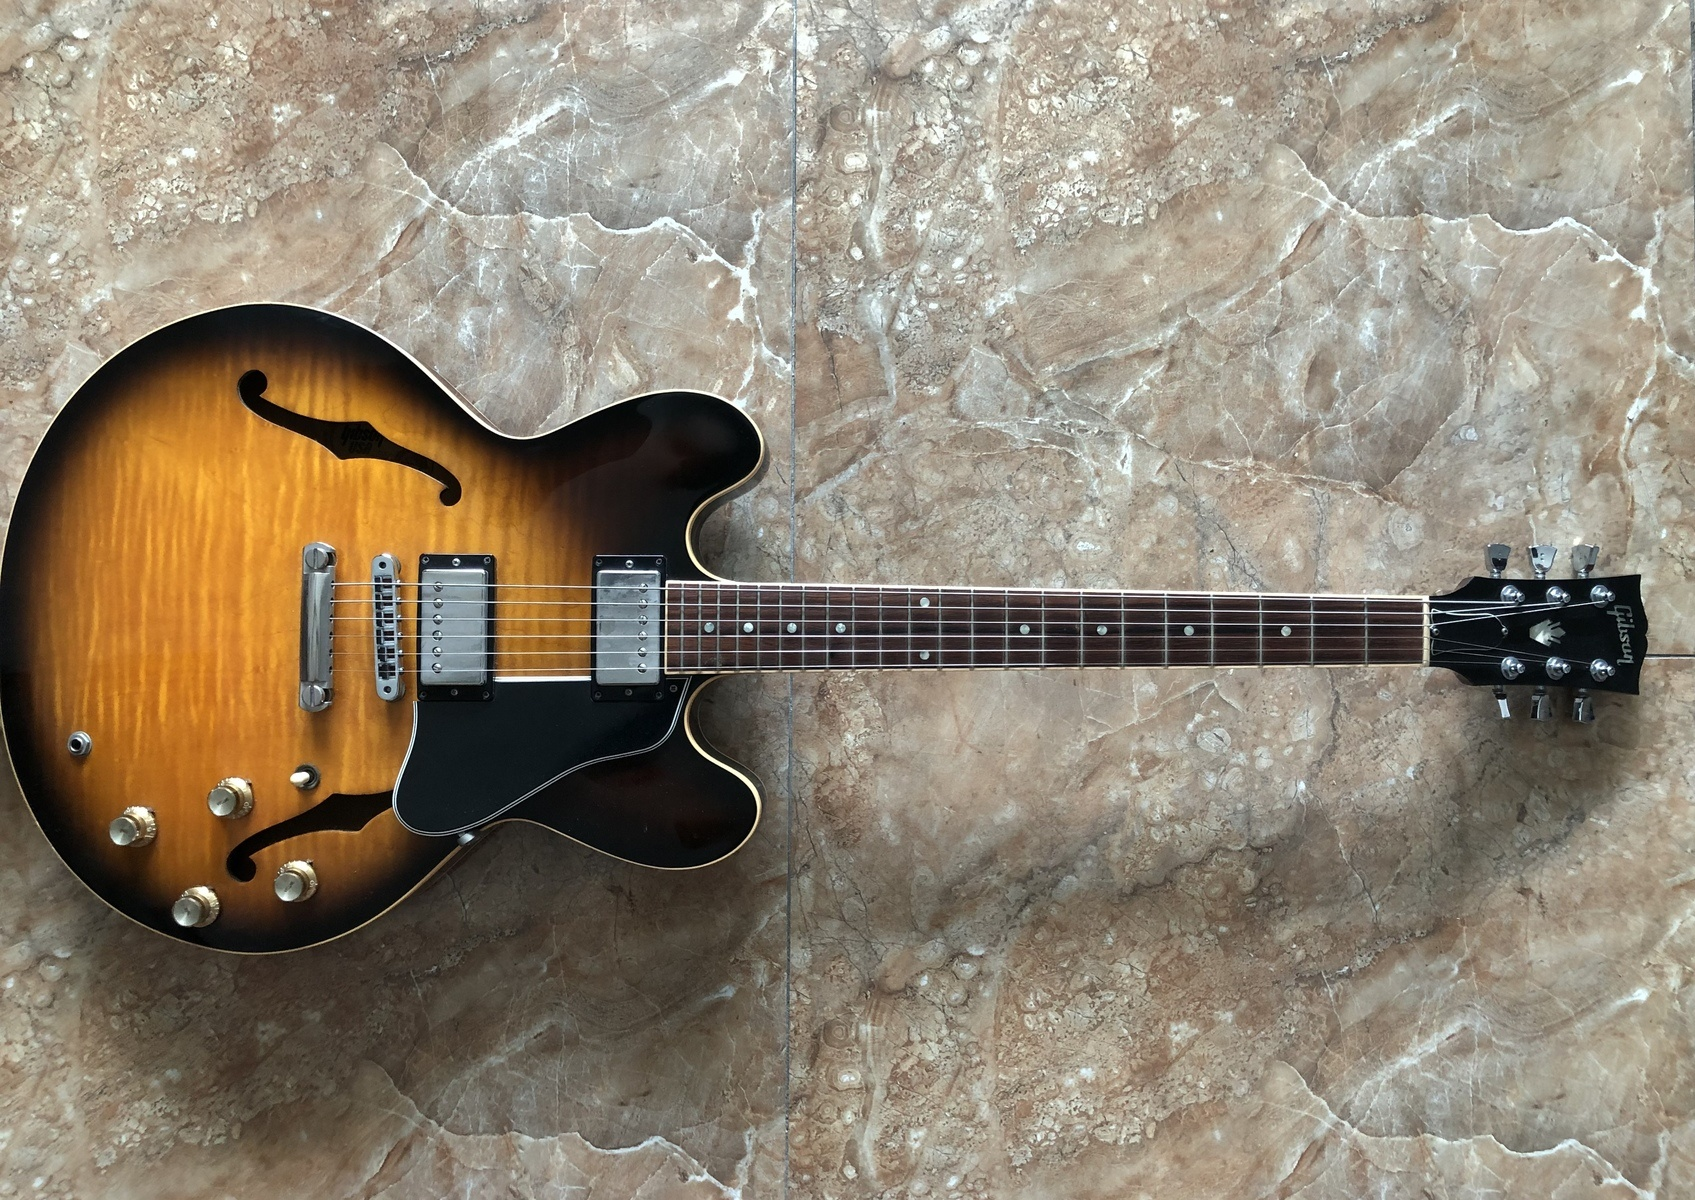 Photo of Gibson ES-335 Electric Guitar in a guitar